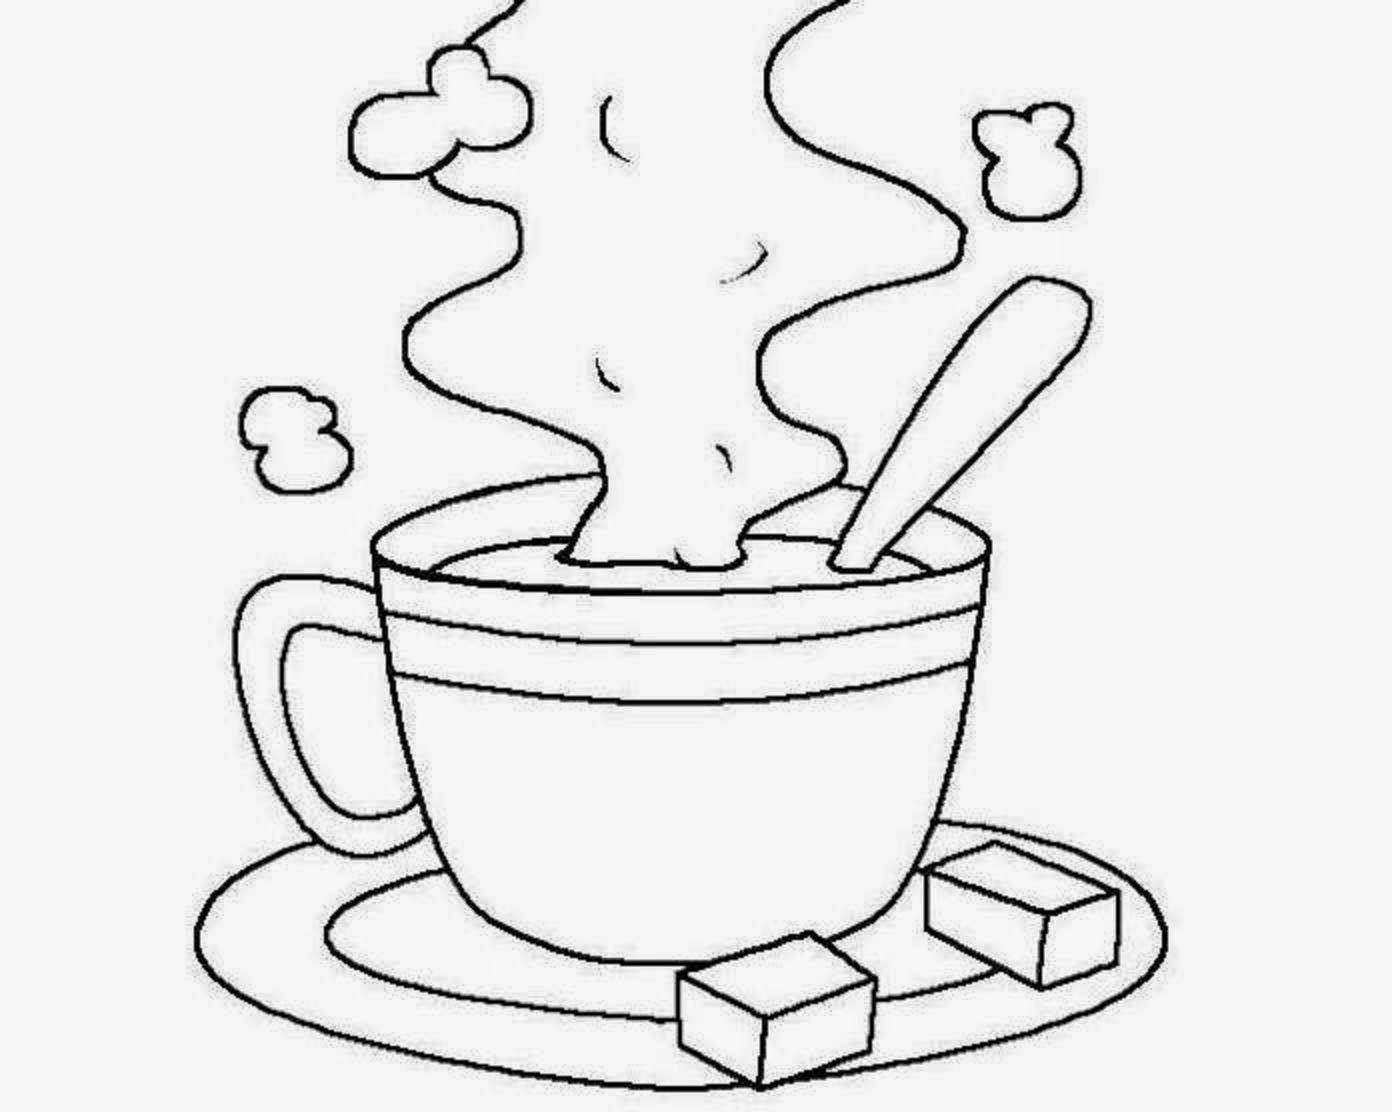 coloring pictures starbucks starbucks logo coloring page sketch coloring page pictures starbucks coloring